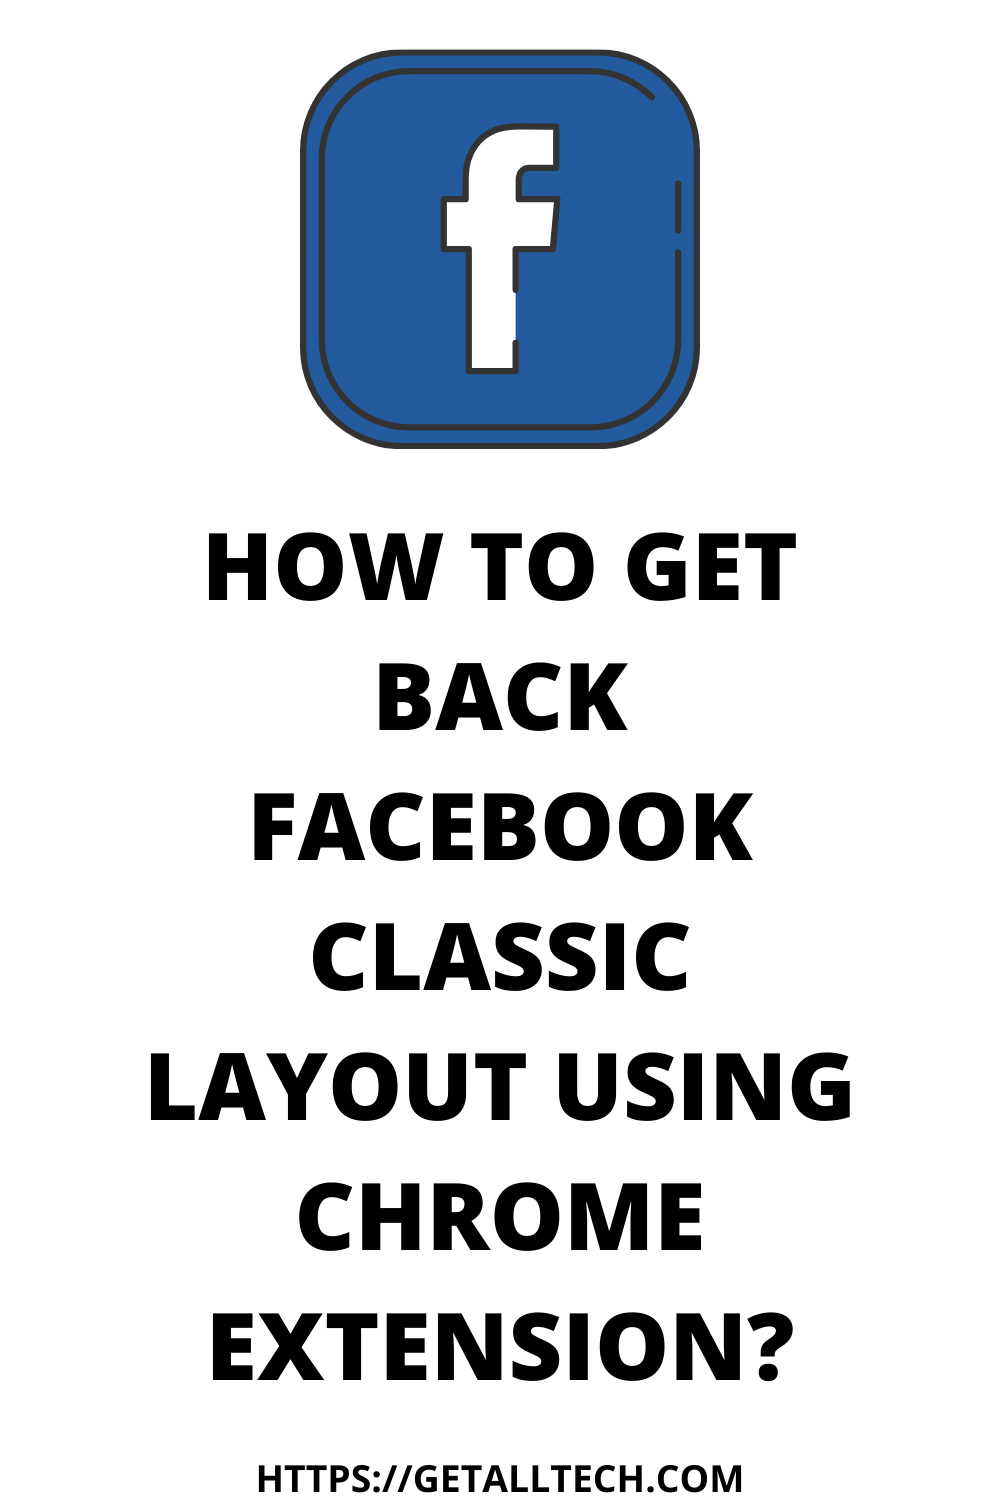 How To Get Back Facebook Classic Layout Using Chrome Extension Facebook Layout Chrome Extension Layout